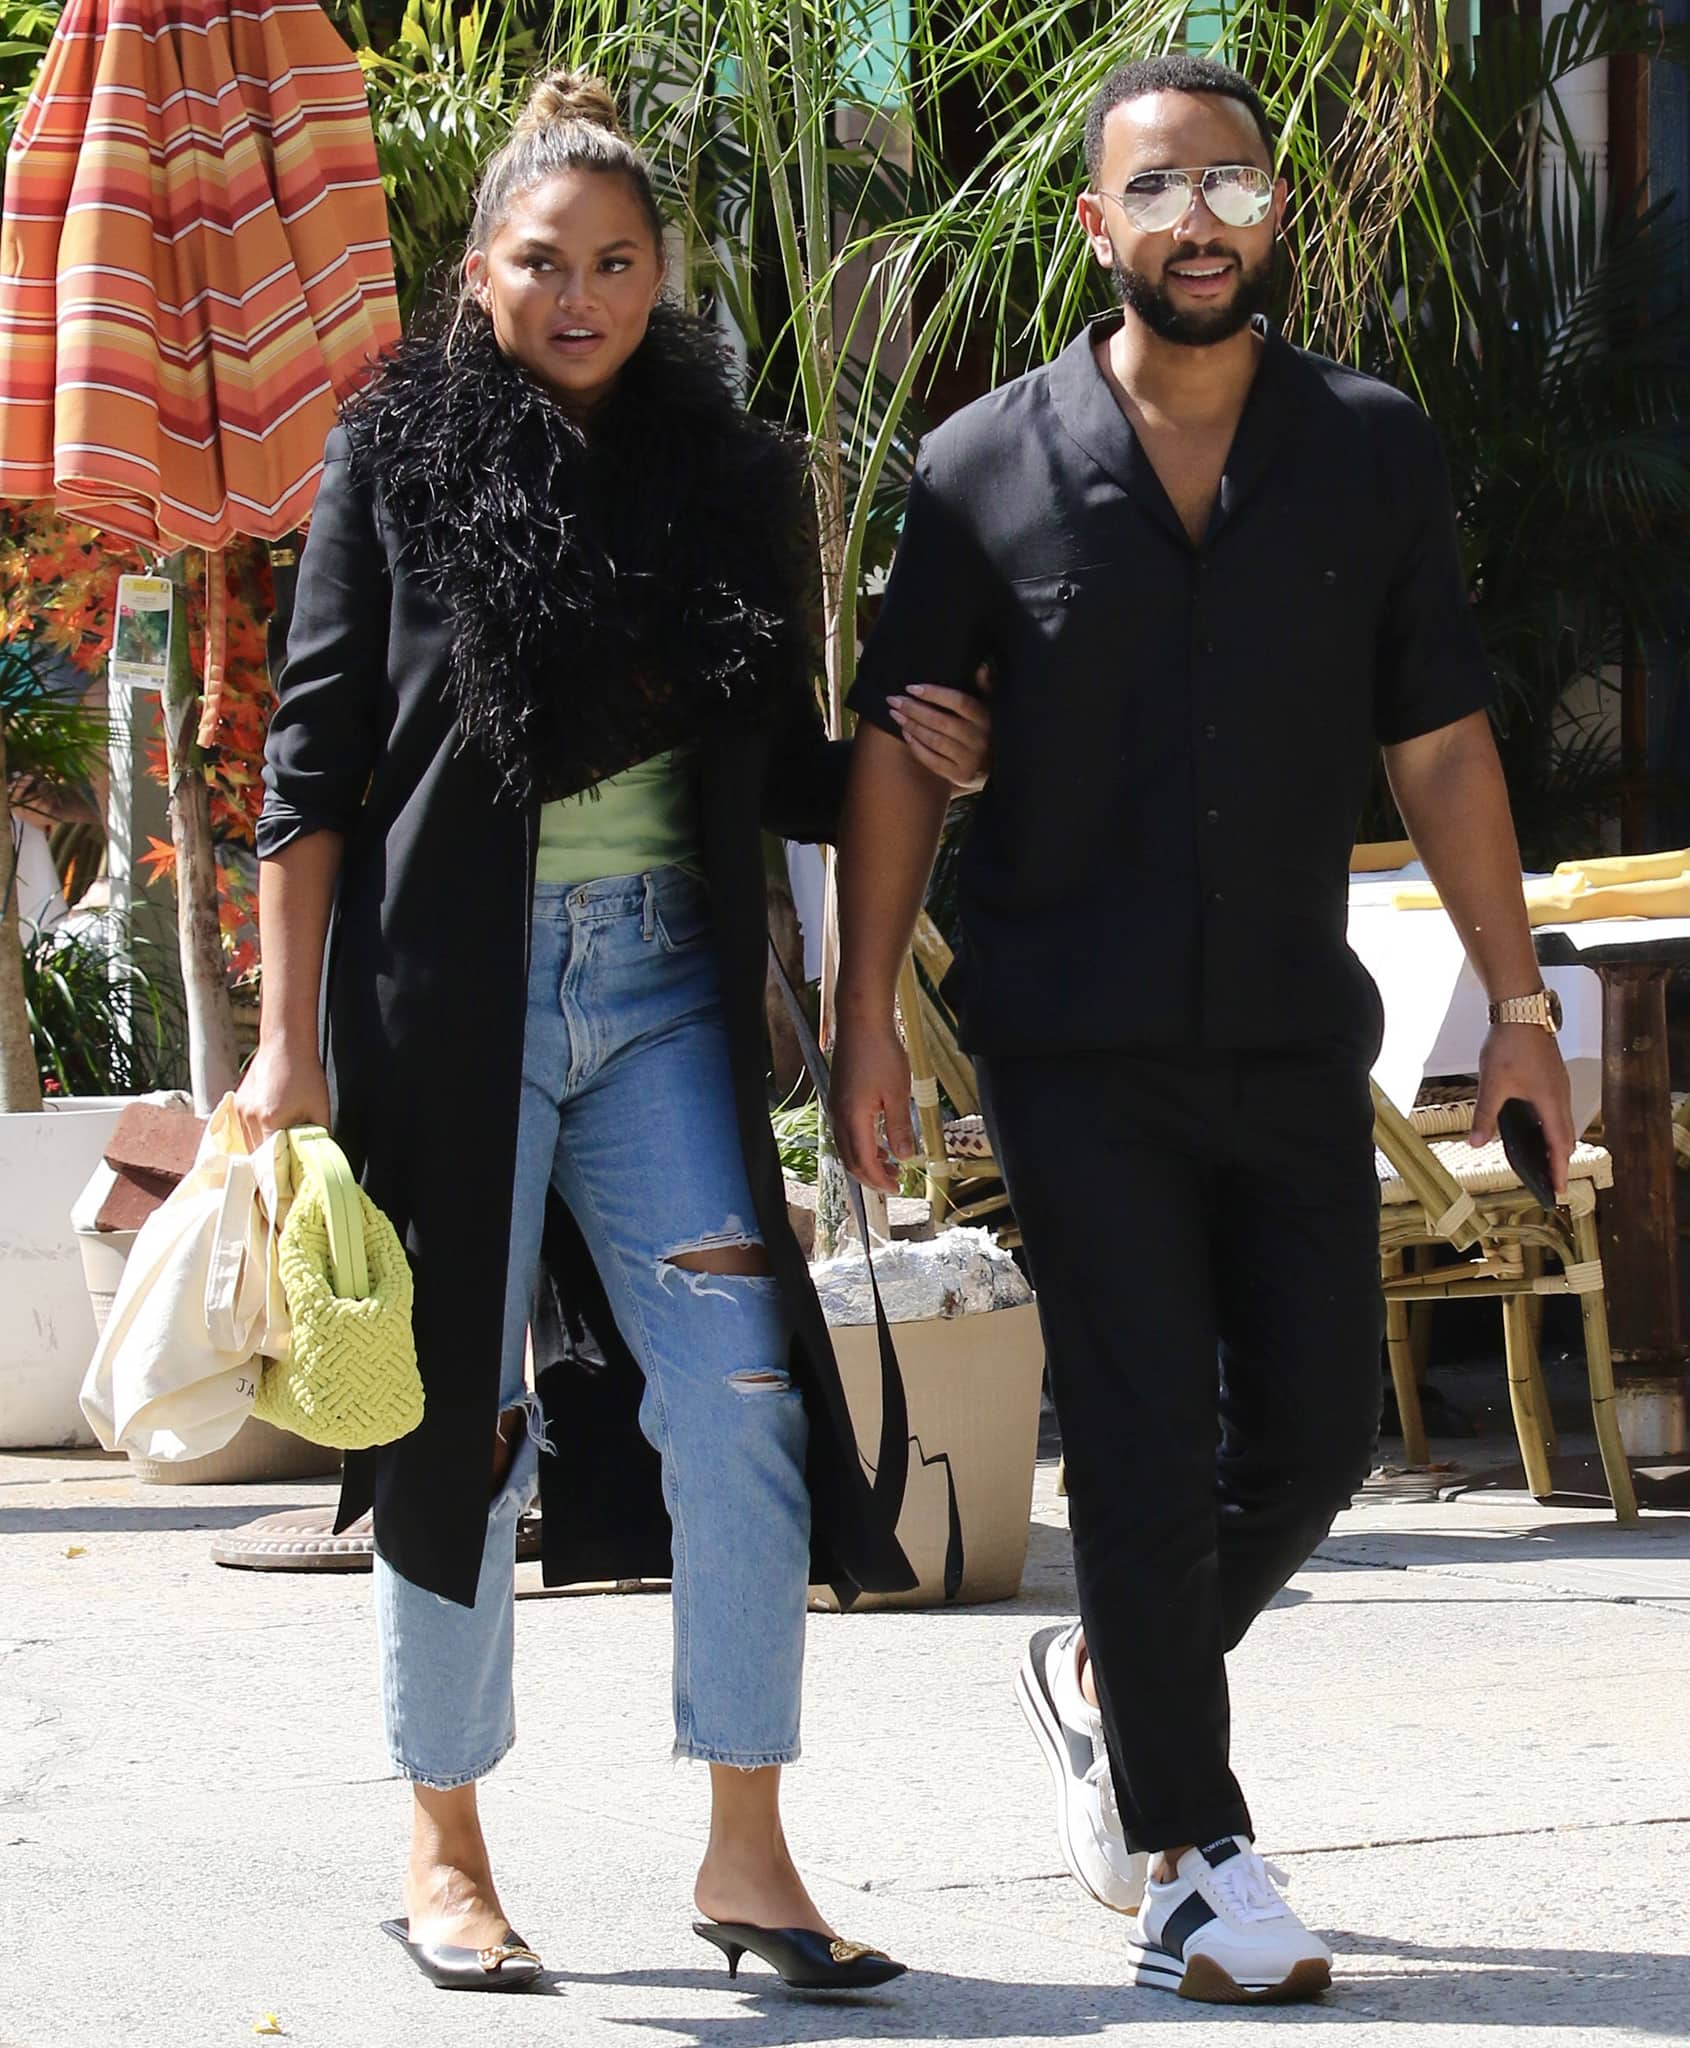 John Legend looks handsome in his black shirt, jeans, and Tom Ford James sneakers